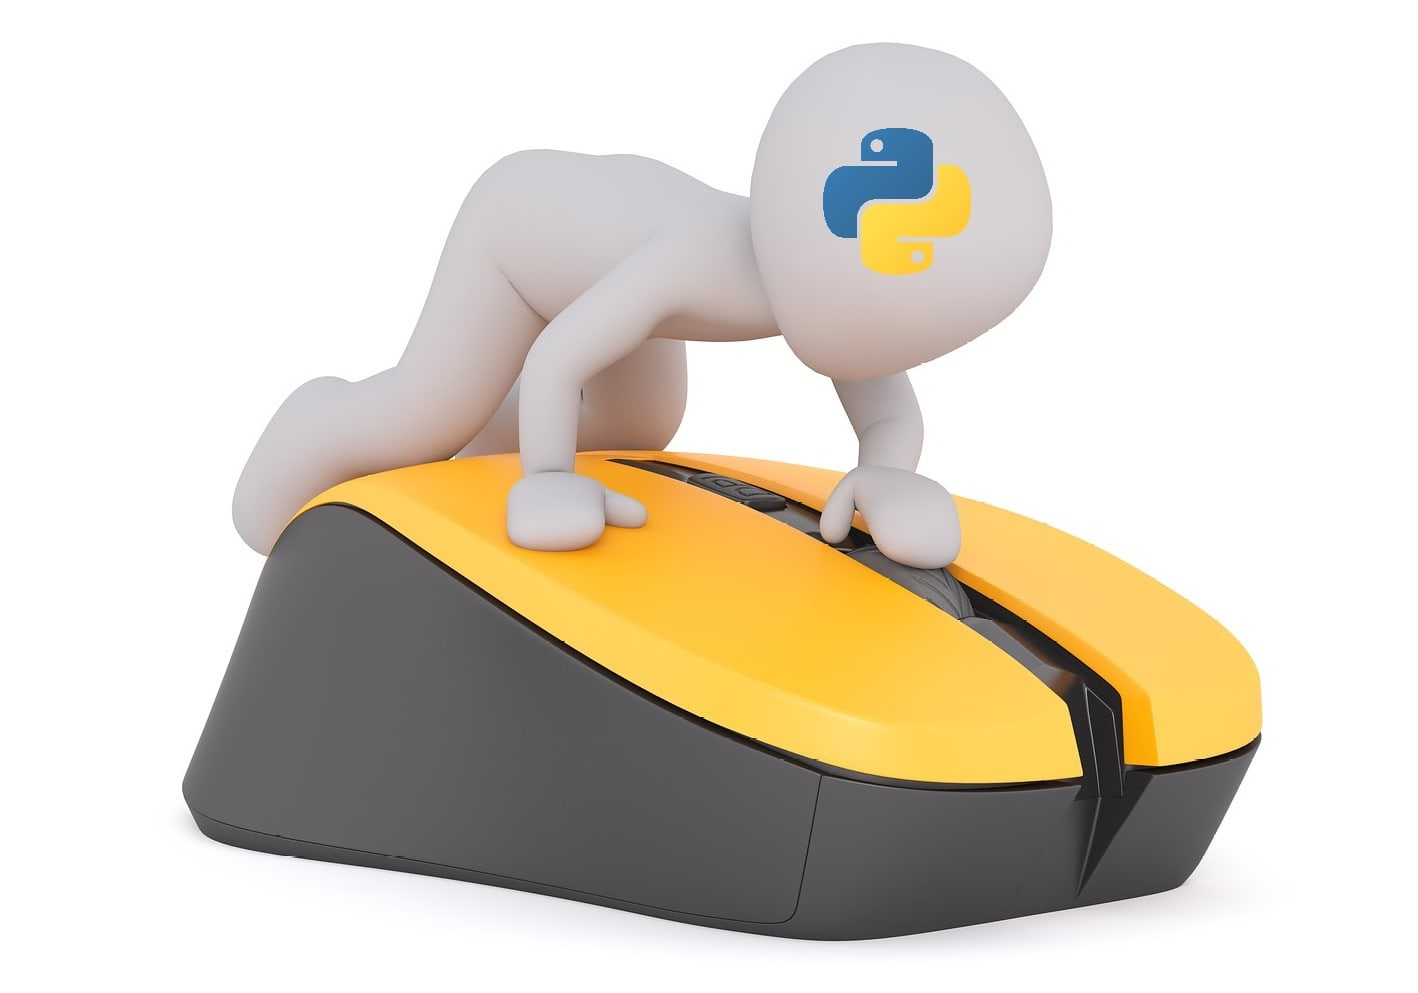 How to Control your Mouse in Python